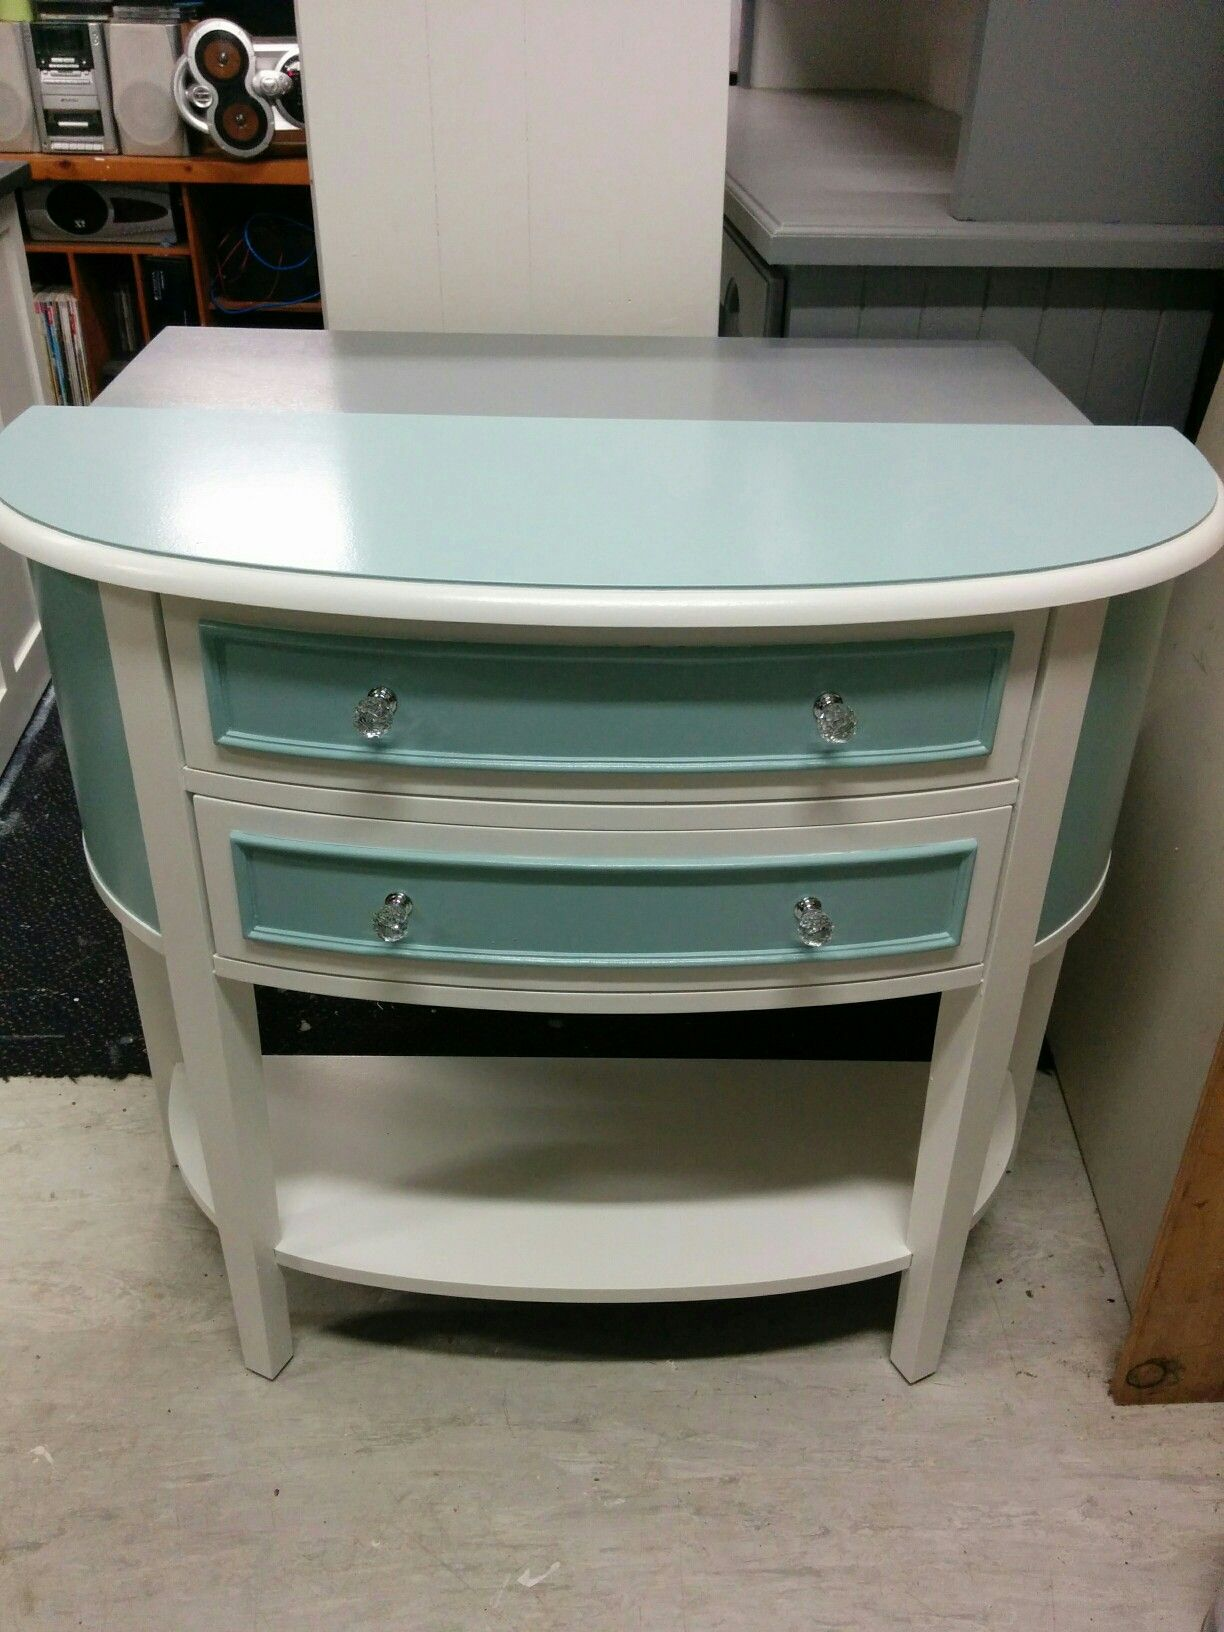 After duck egg blue antique white crystal knobs